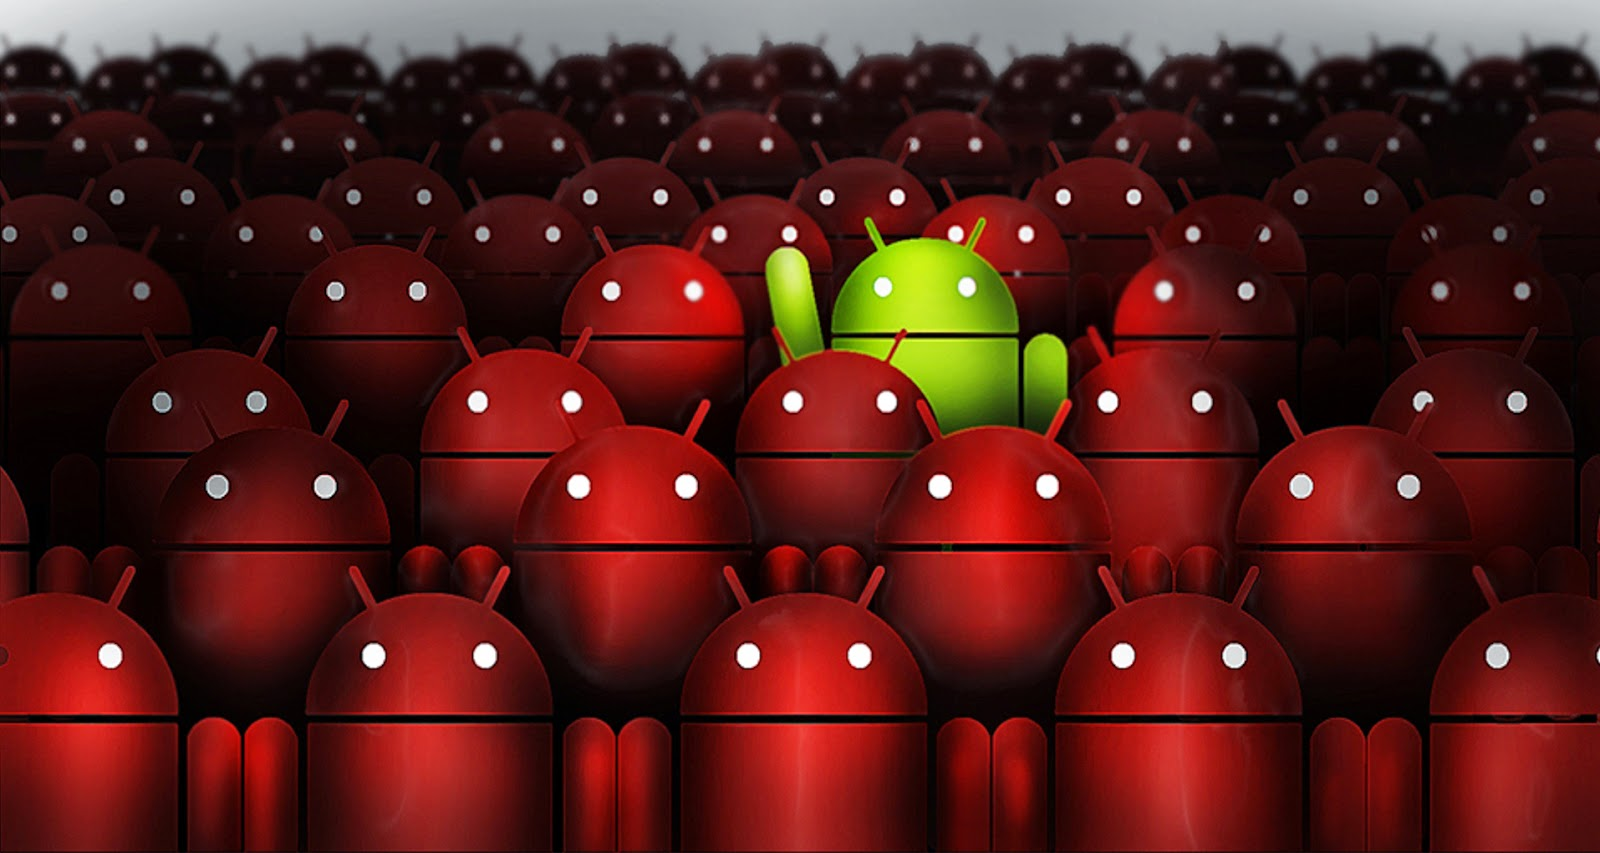 Study suggests 88% of all Android devices are insecure